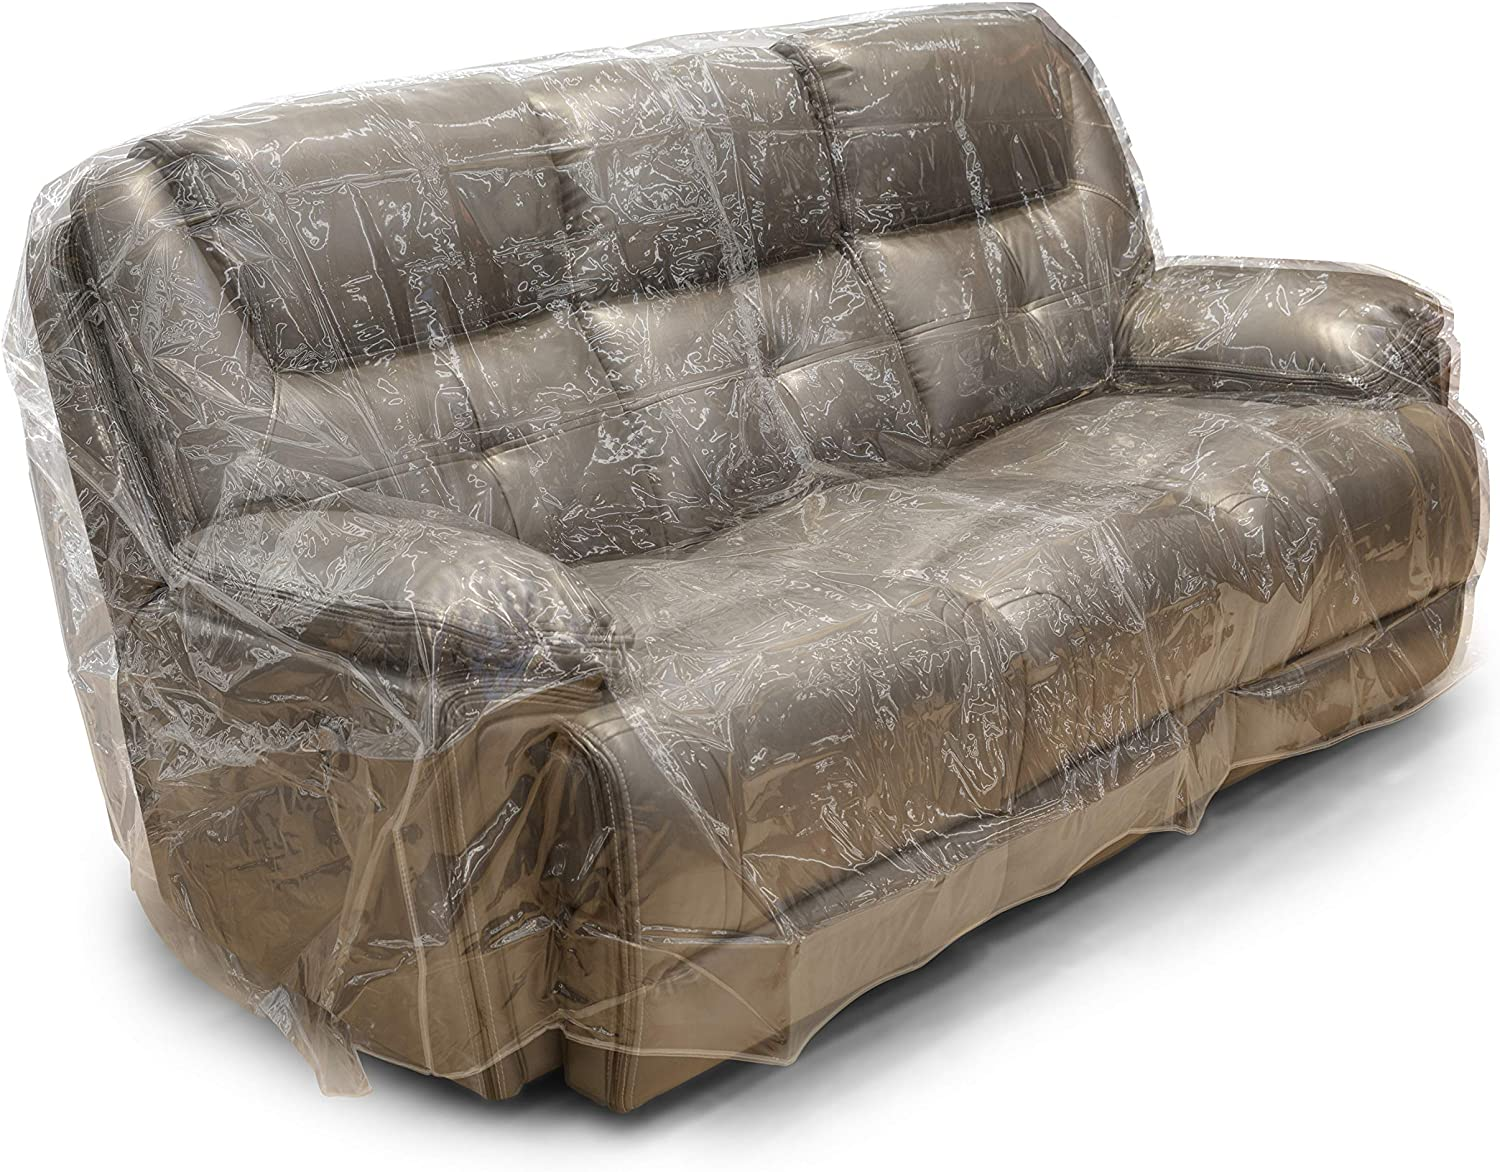 Besti Plastic Couch Cover for Pets - Clear Slipcovers for Big Sofas - Dust, Water, Dirt Furniture, Upholstery Protectors for Home, Living Room - Dog and Cat Scratch, Pee and Sit Deterrent - 96x42x40: Kitchen & Dining